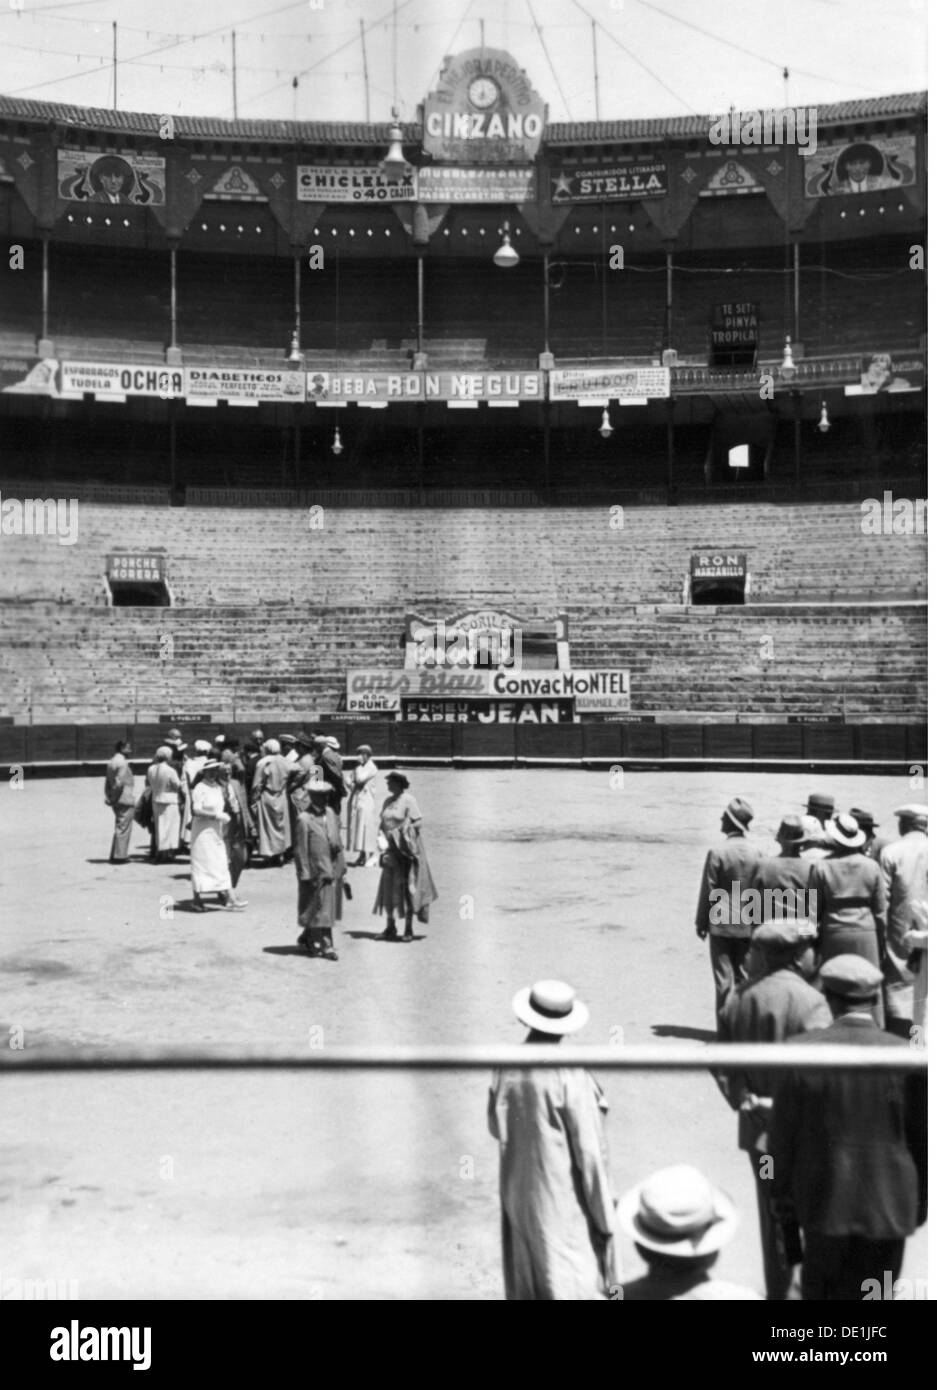 geography / travel Spain Barcelona people tourists in the bullring 19.5.1936 arena arenas battlefield battleground - Stock Image